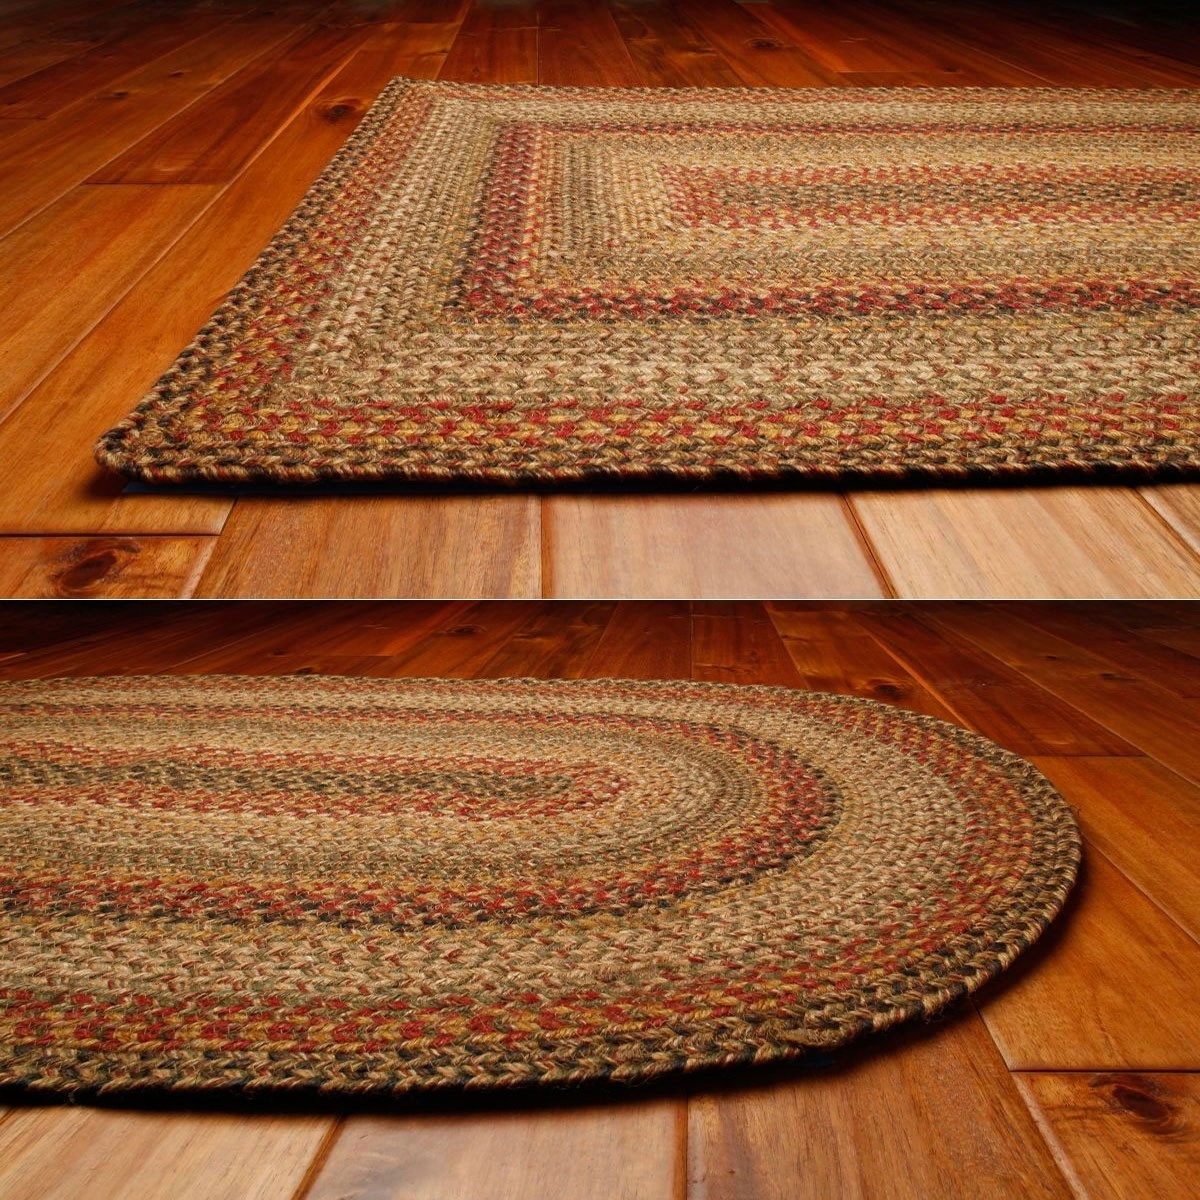 Kingston Jute Braided Rugs Regarding Buy Braided Rugs For Less (View 3 of 10)